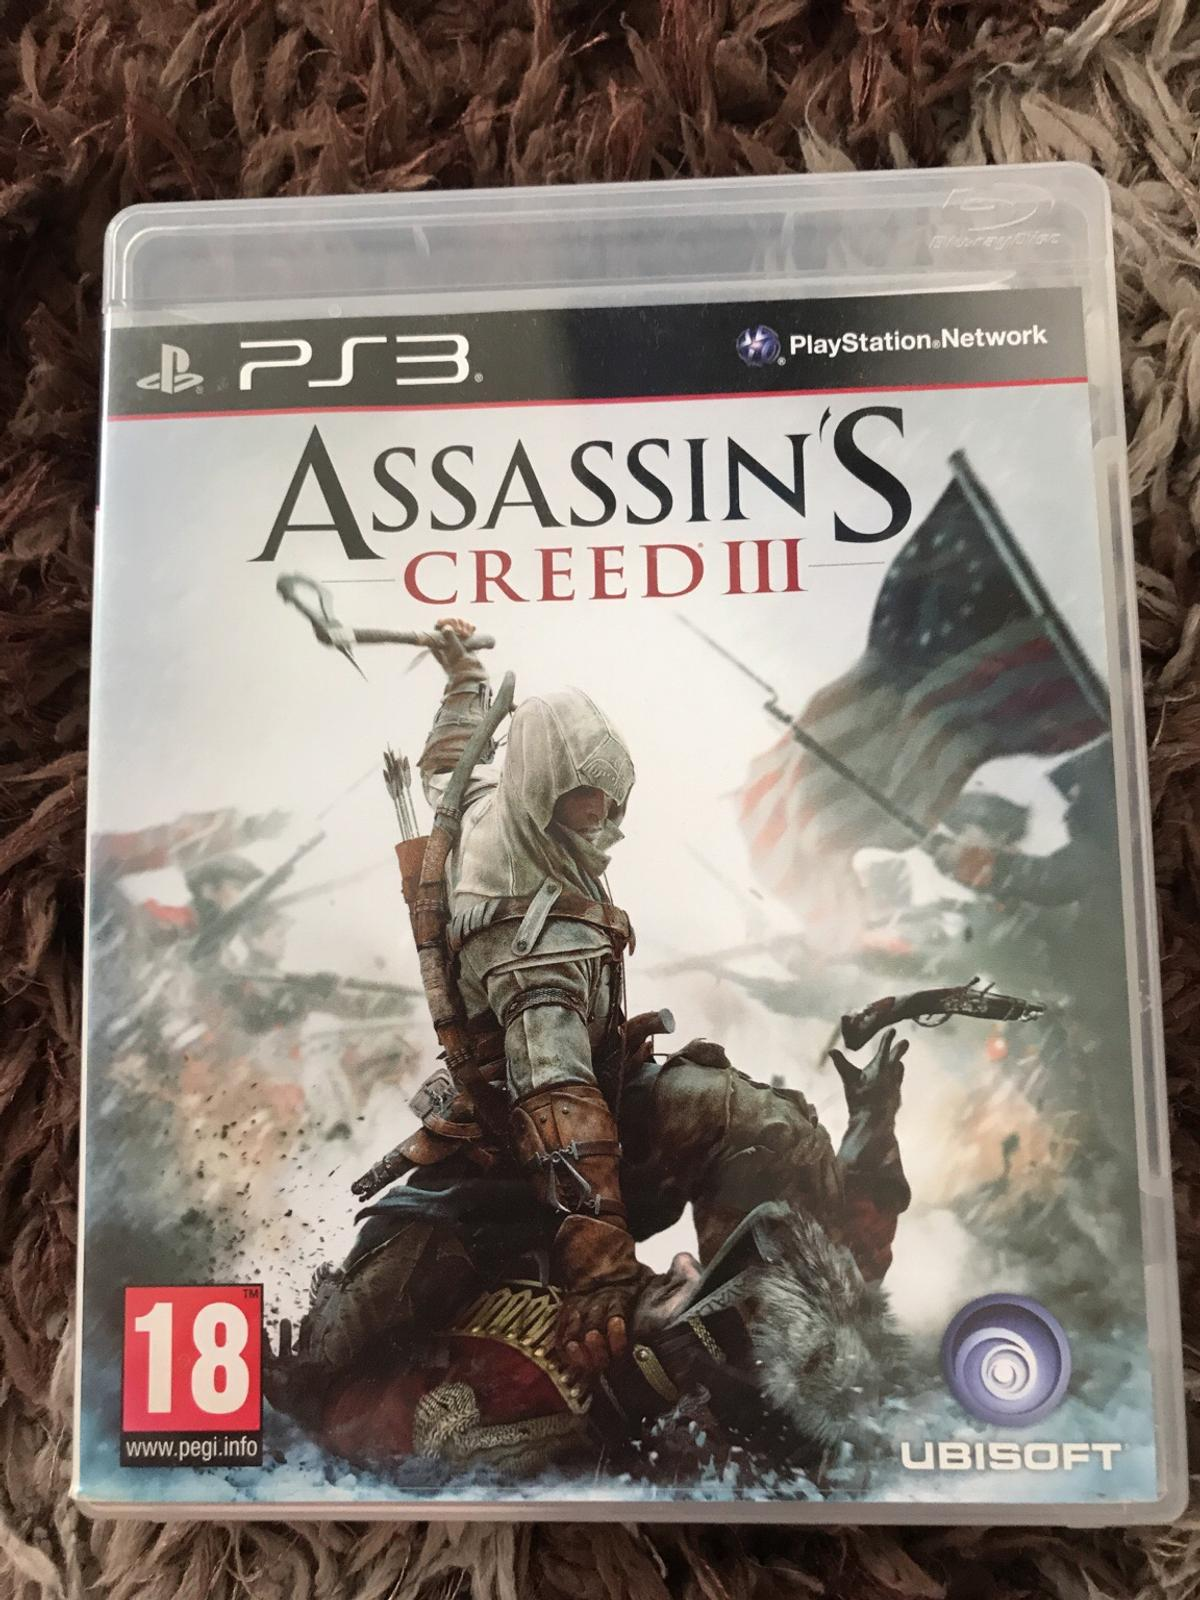 Assassins Creed 3 Ps3 Game In L12 Liverpool For 15 00 For Sale